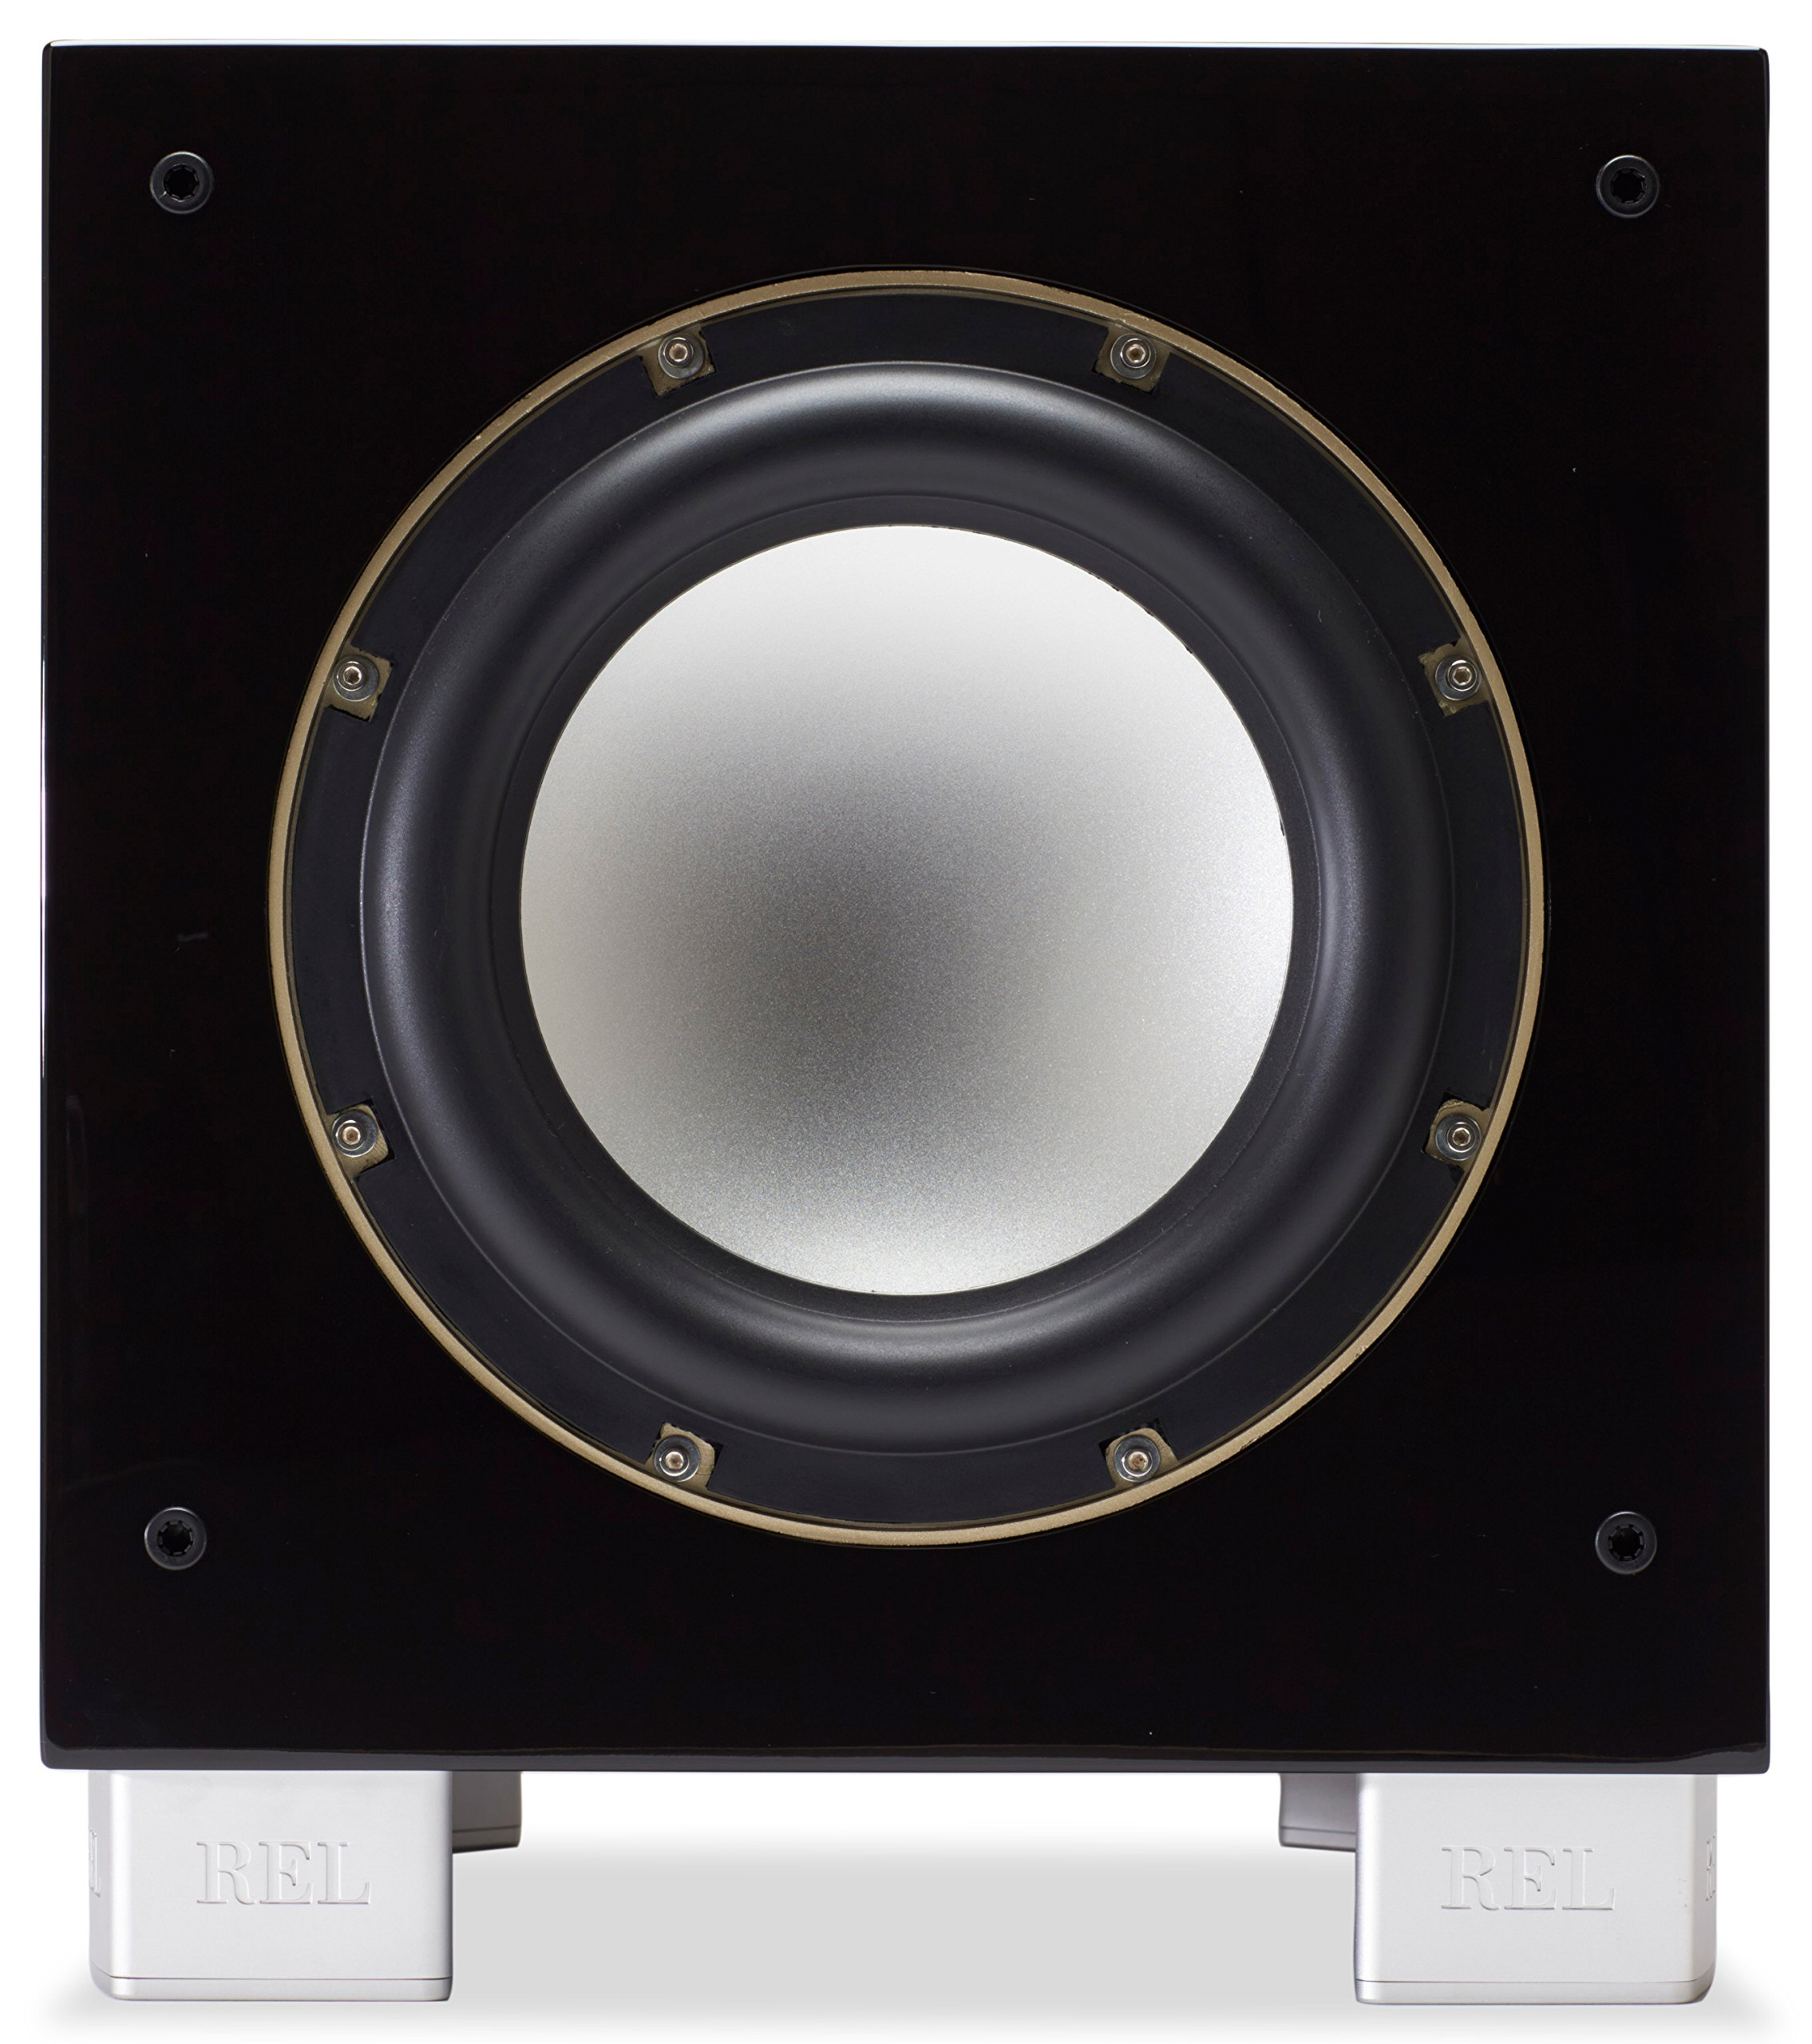 REL Acoustics S/3 SHO Subwoofer (Super High Output), Longbow Wirless compatible, Black Lacquer